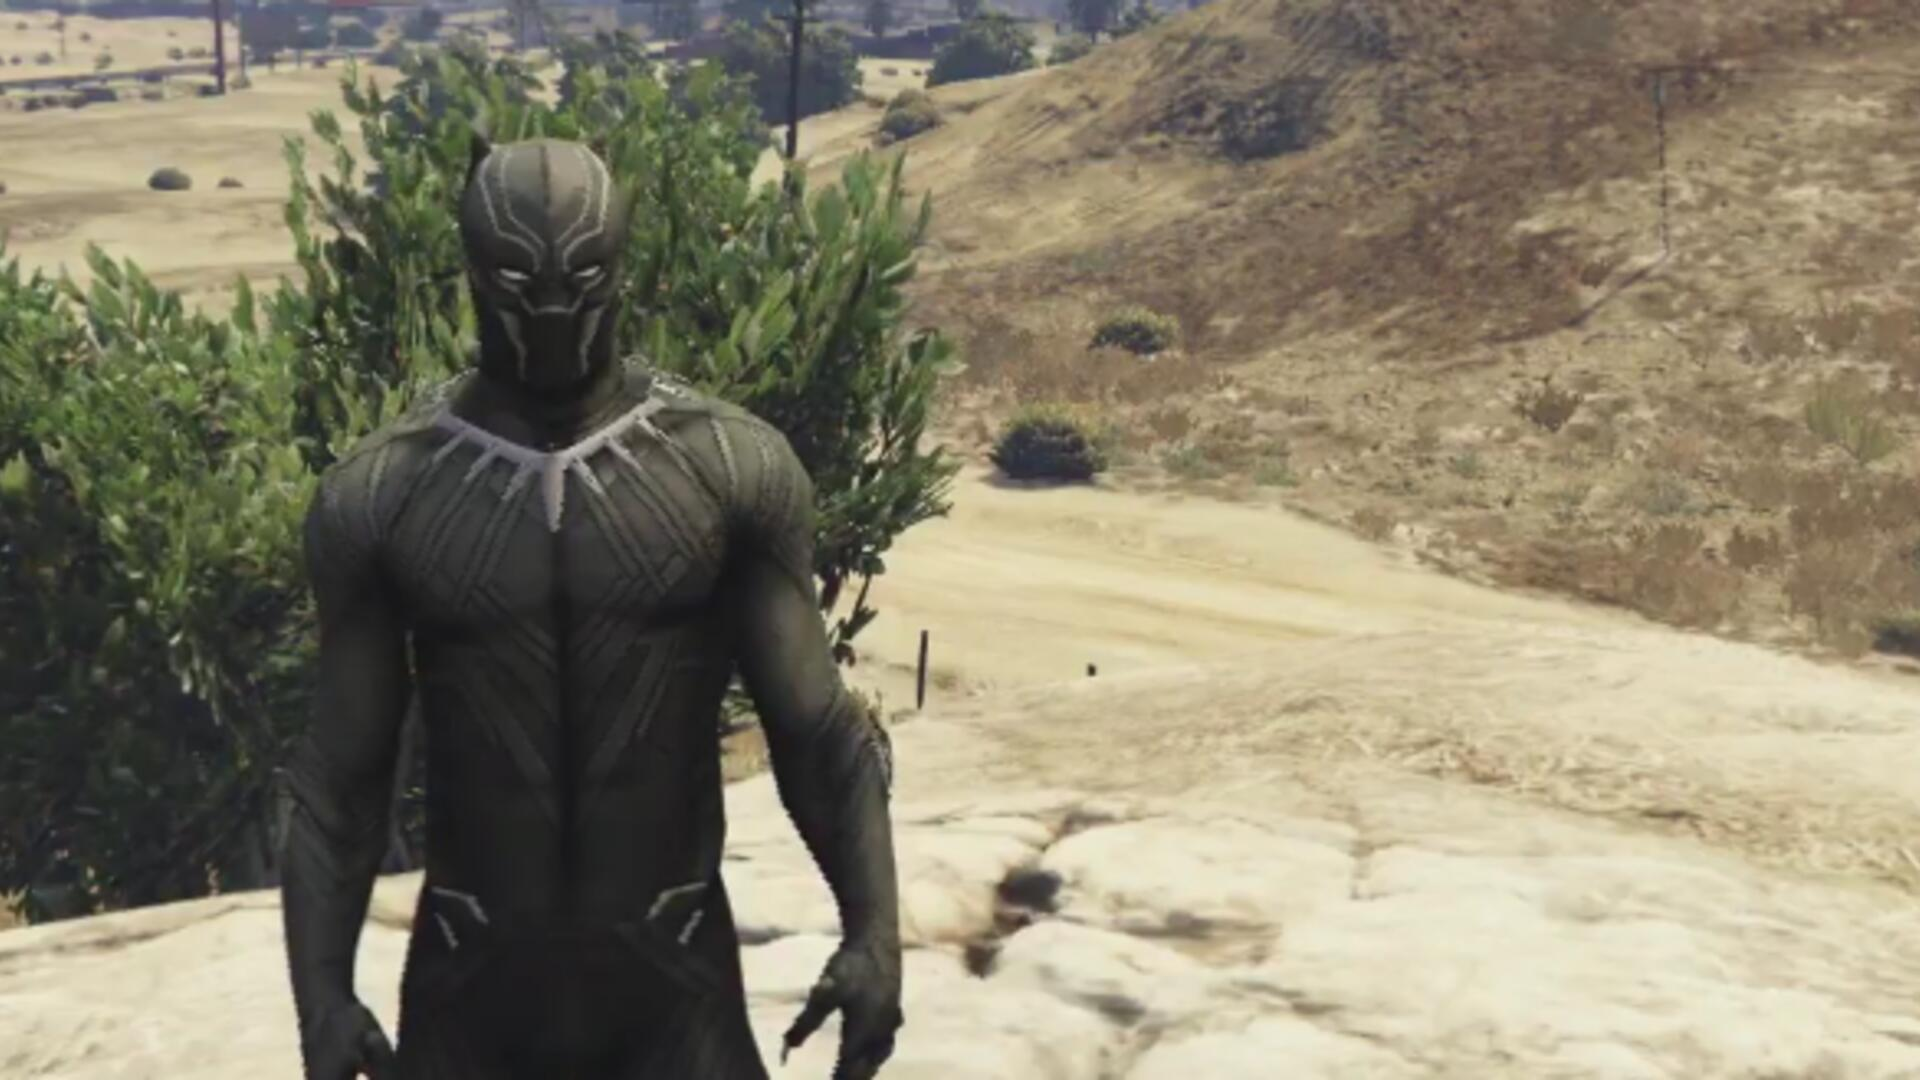 Wakanda Forever! Here's a Great Black Panther Mod for Grand Theft Auto V